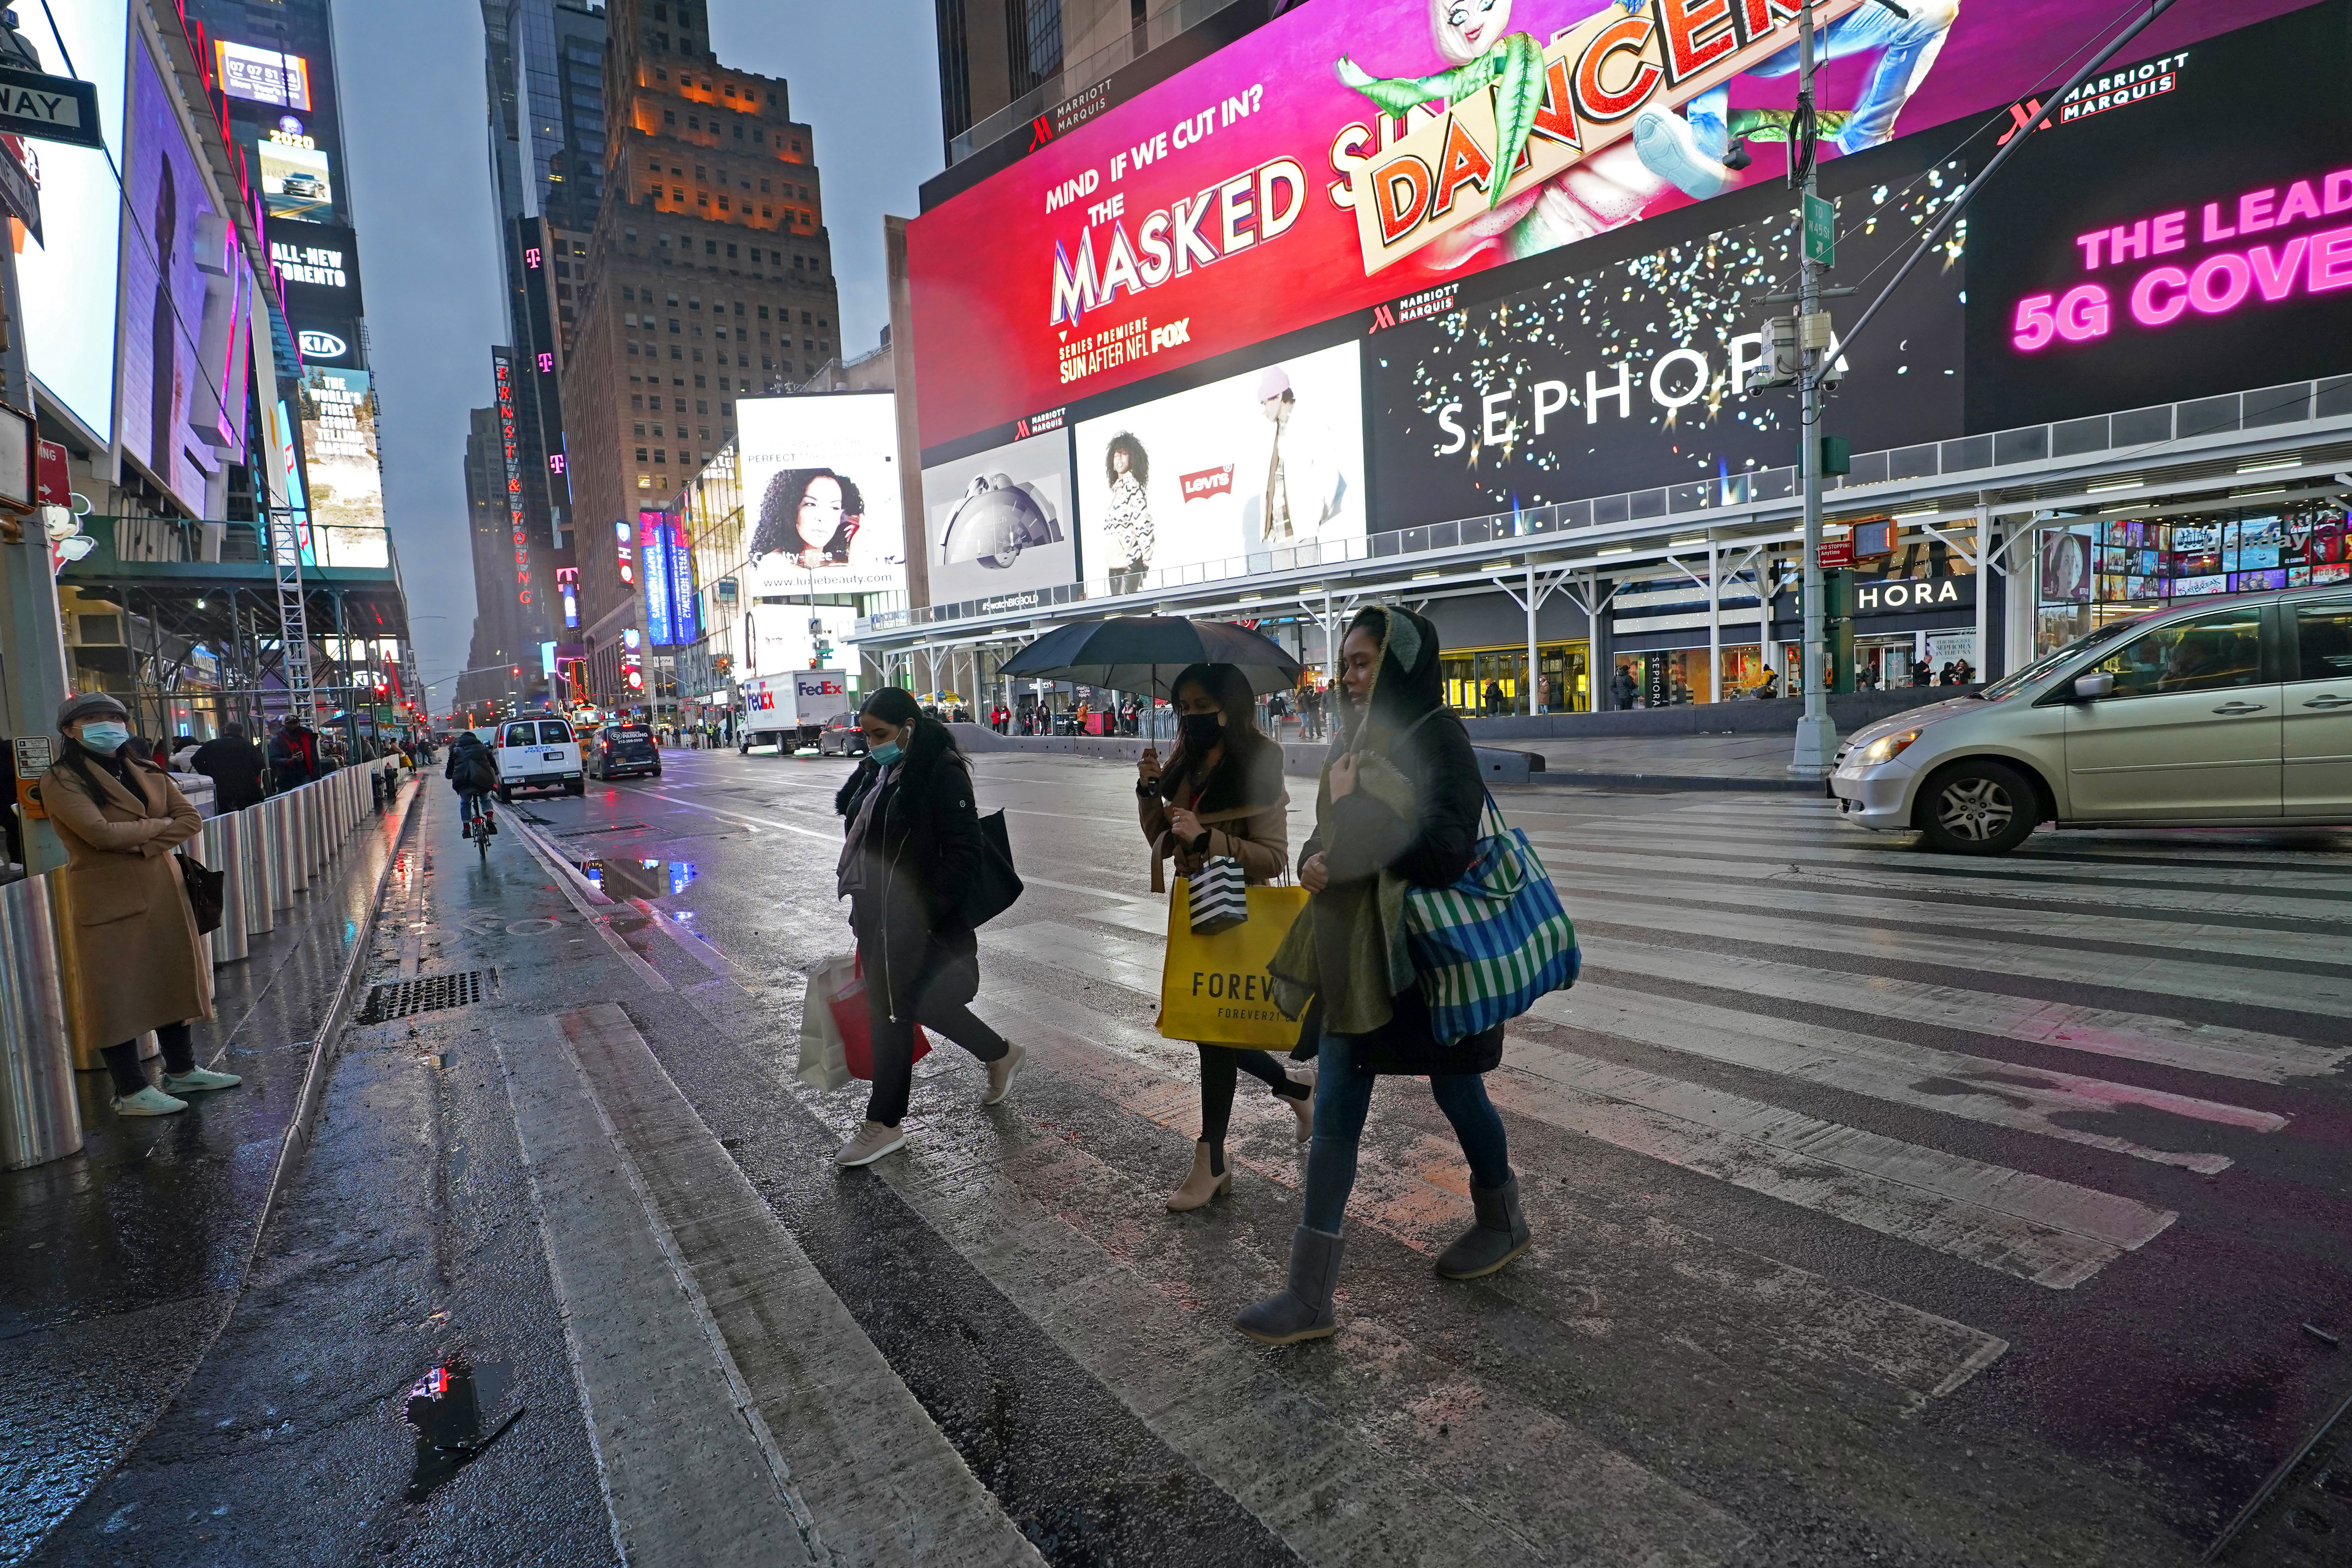 Shoppers walk across a nearly empty street on Christmas Eve in New York.